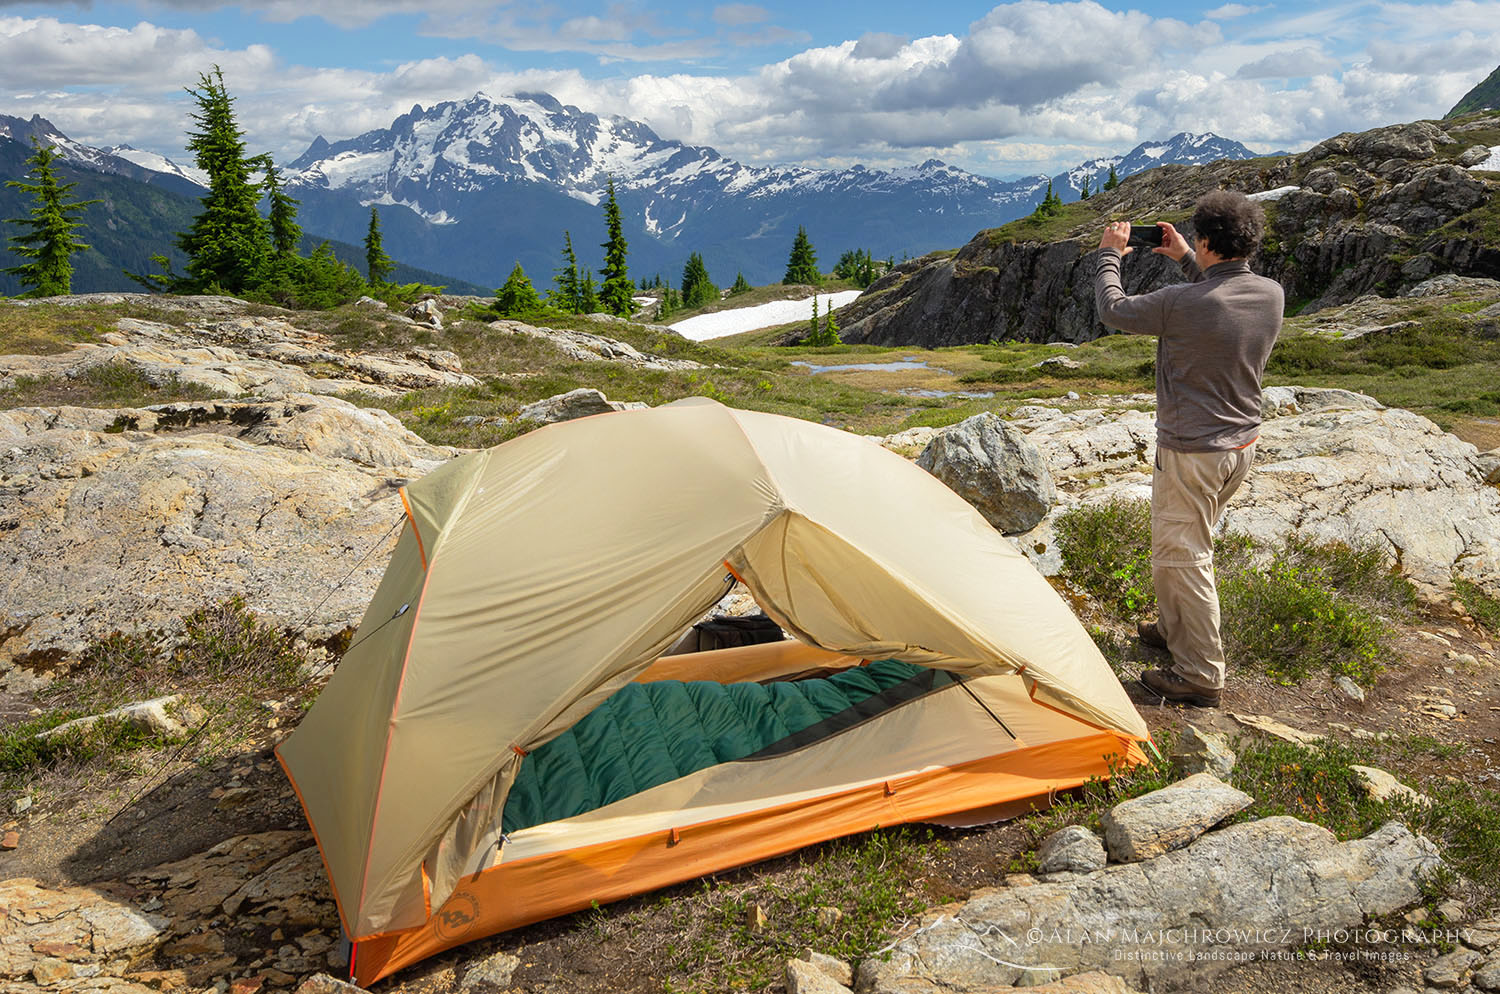 Mount Baker Wilderness campsite North Cascades Washington Backpacking Photography Gear Tips